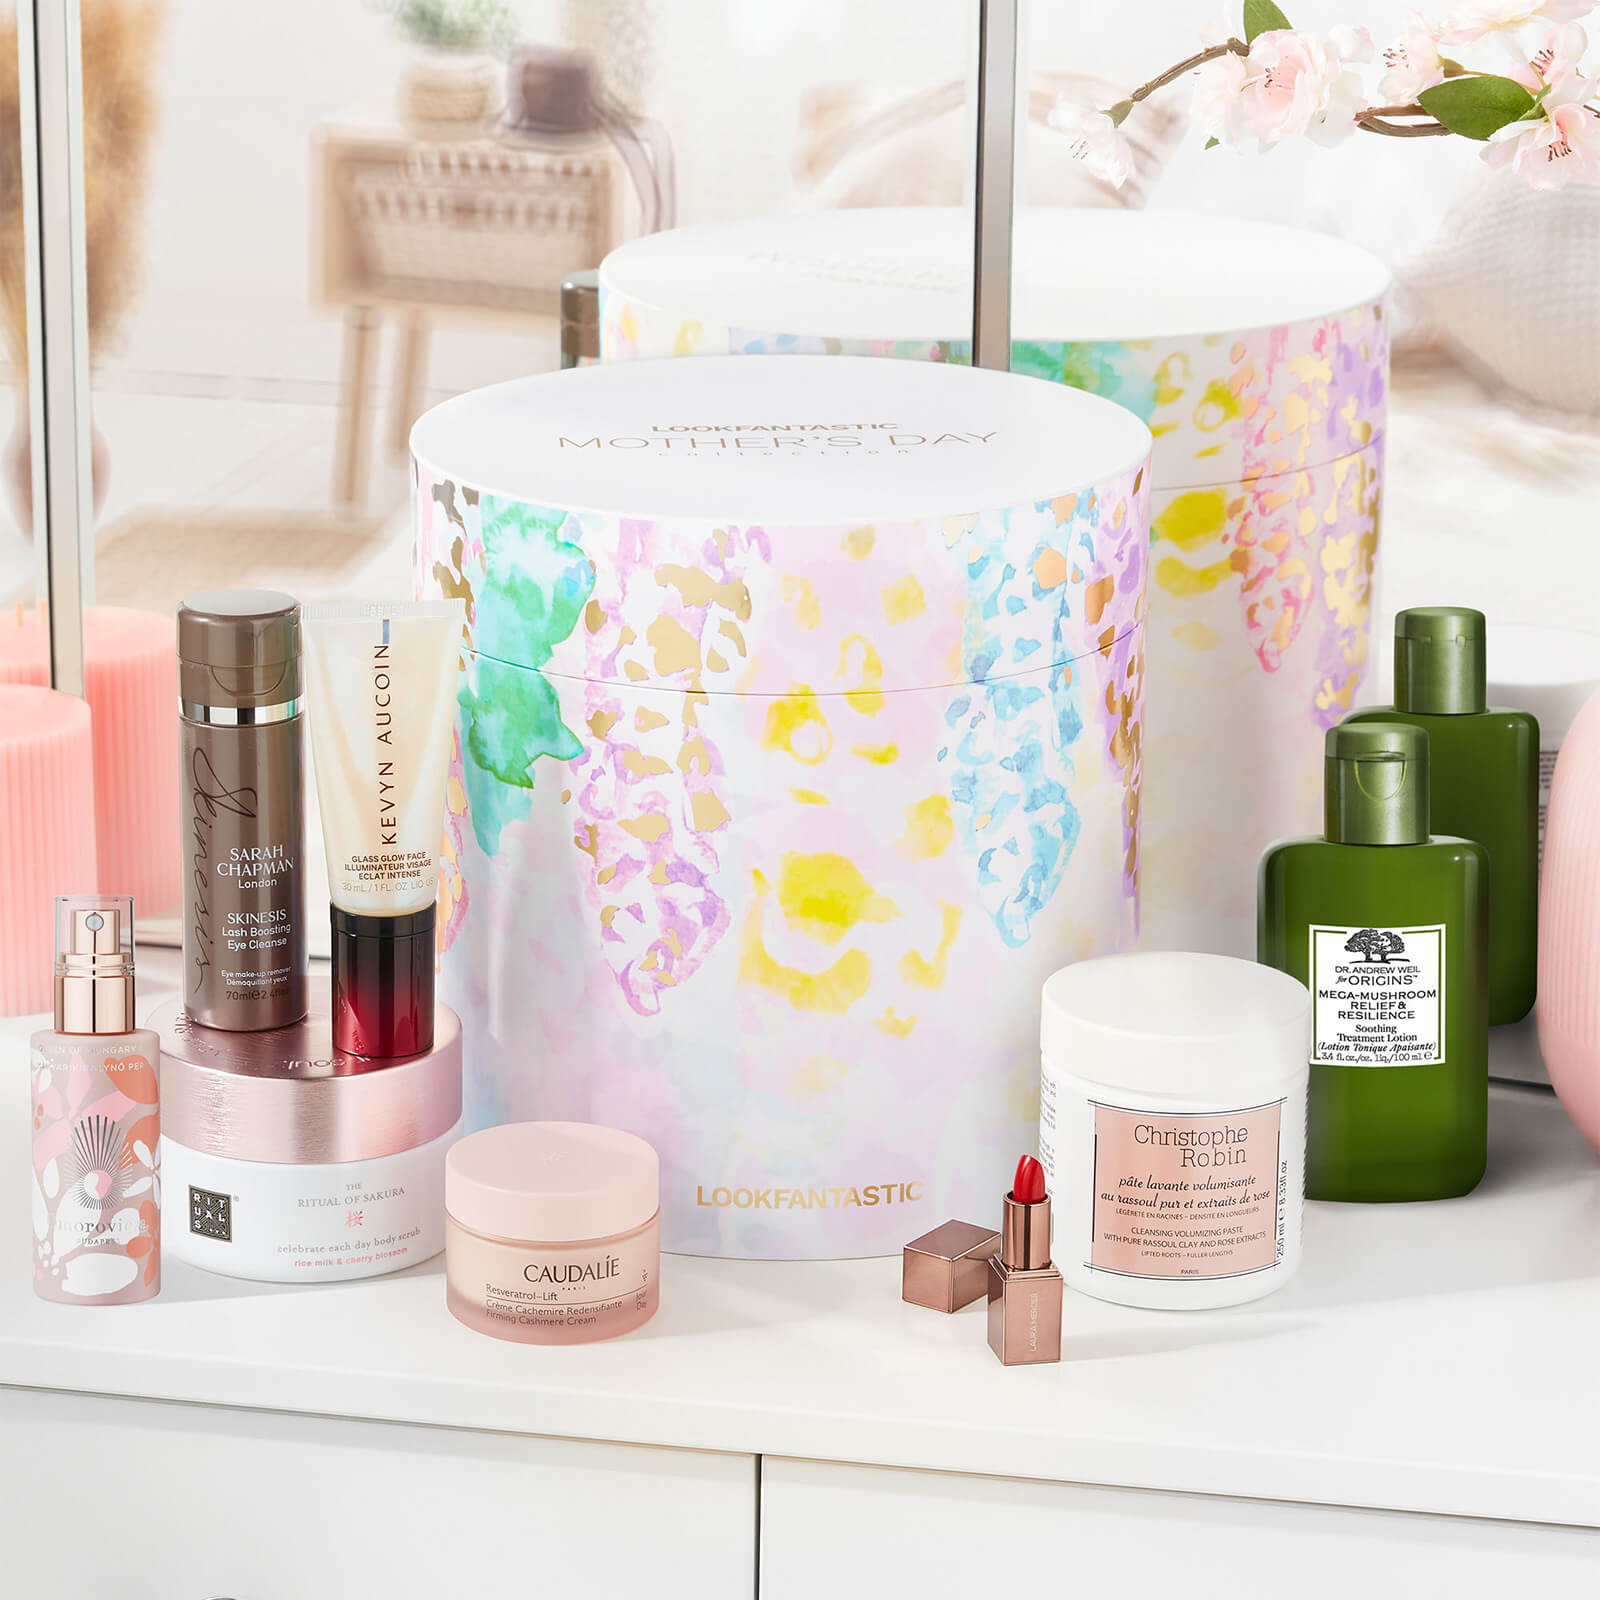 Lookfantastic UK: Mother's Day Collection 2021 (Worth over £216) is Here